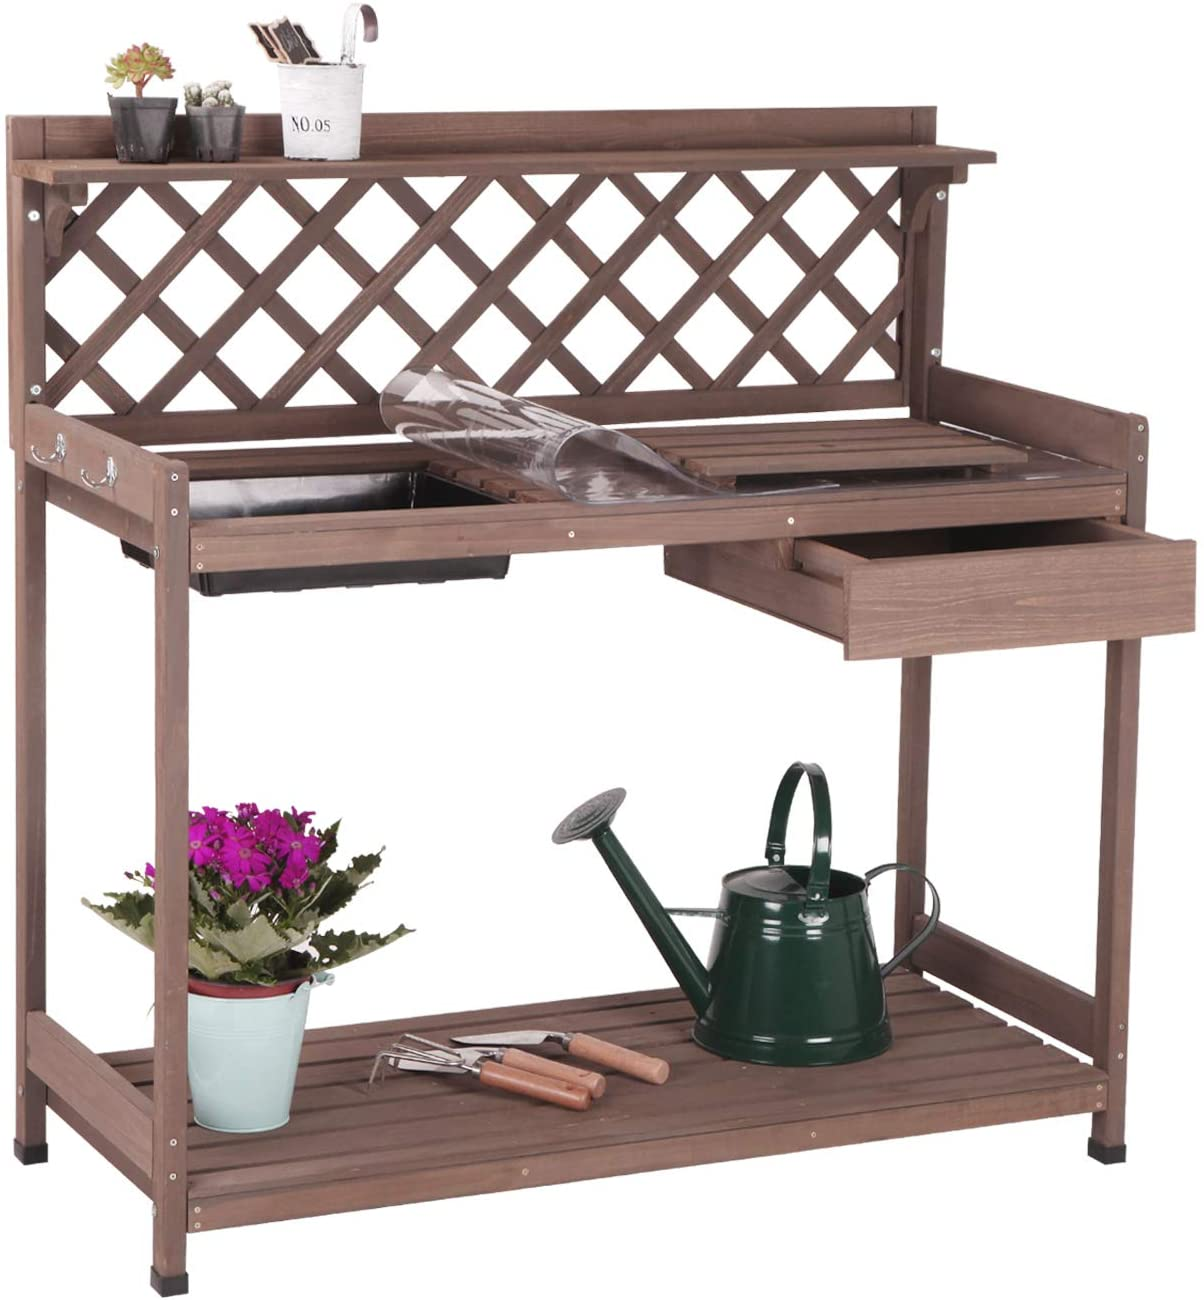 Aivituvin Potting Bench with PVC Layer, Outdoor Gardening Work Bench with Sink & Lid, Wooden Planting Table for Outside with Storage, Drawer, Shelf, Hook